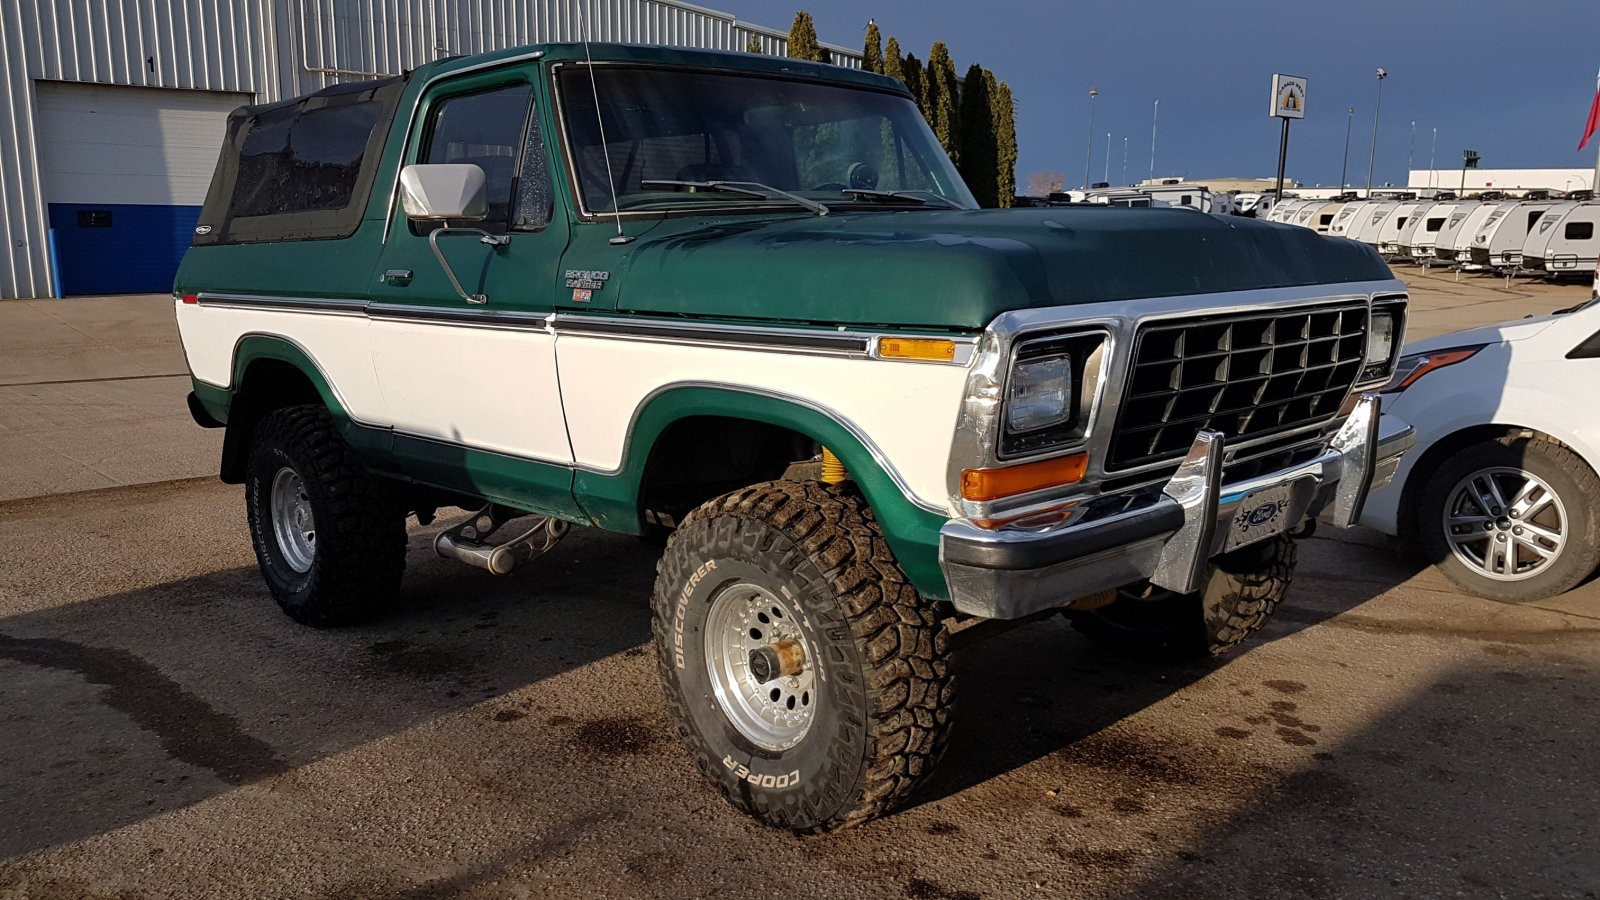 1979 Ford Bronco With a 400 Engine 11.jpg